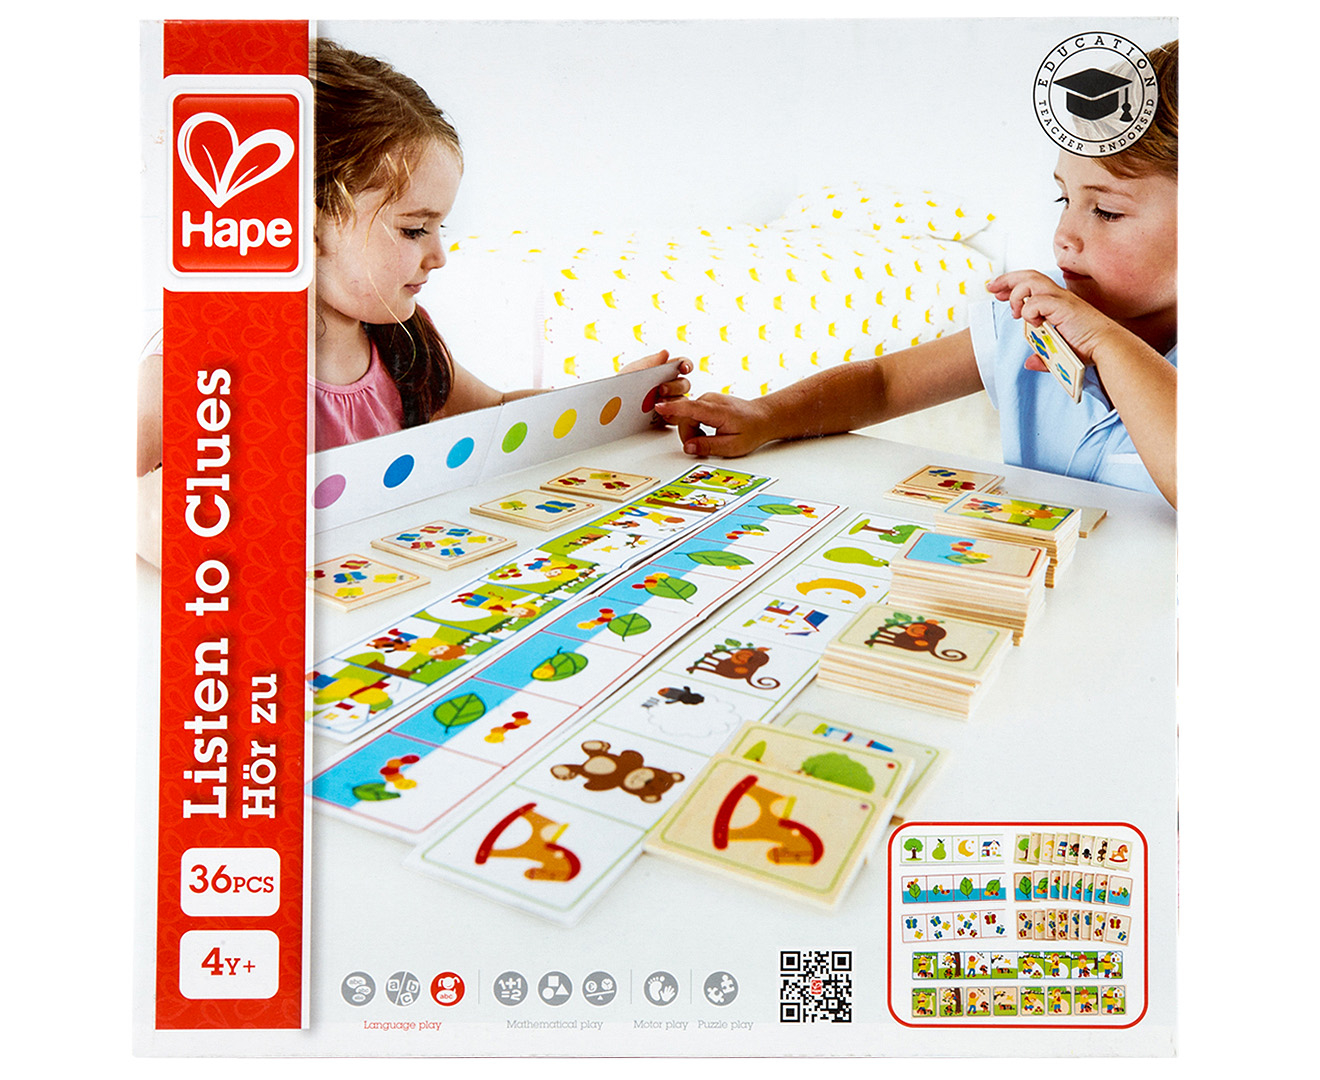 Hape Listen To Clues Game | CatchOfTheDay.co.nz